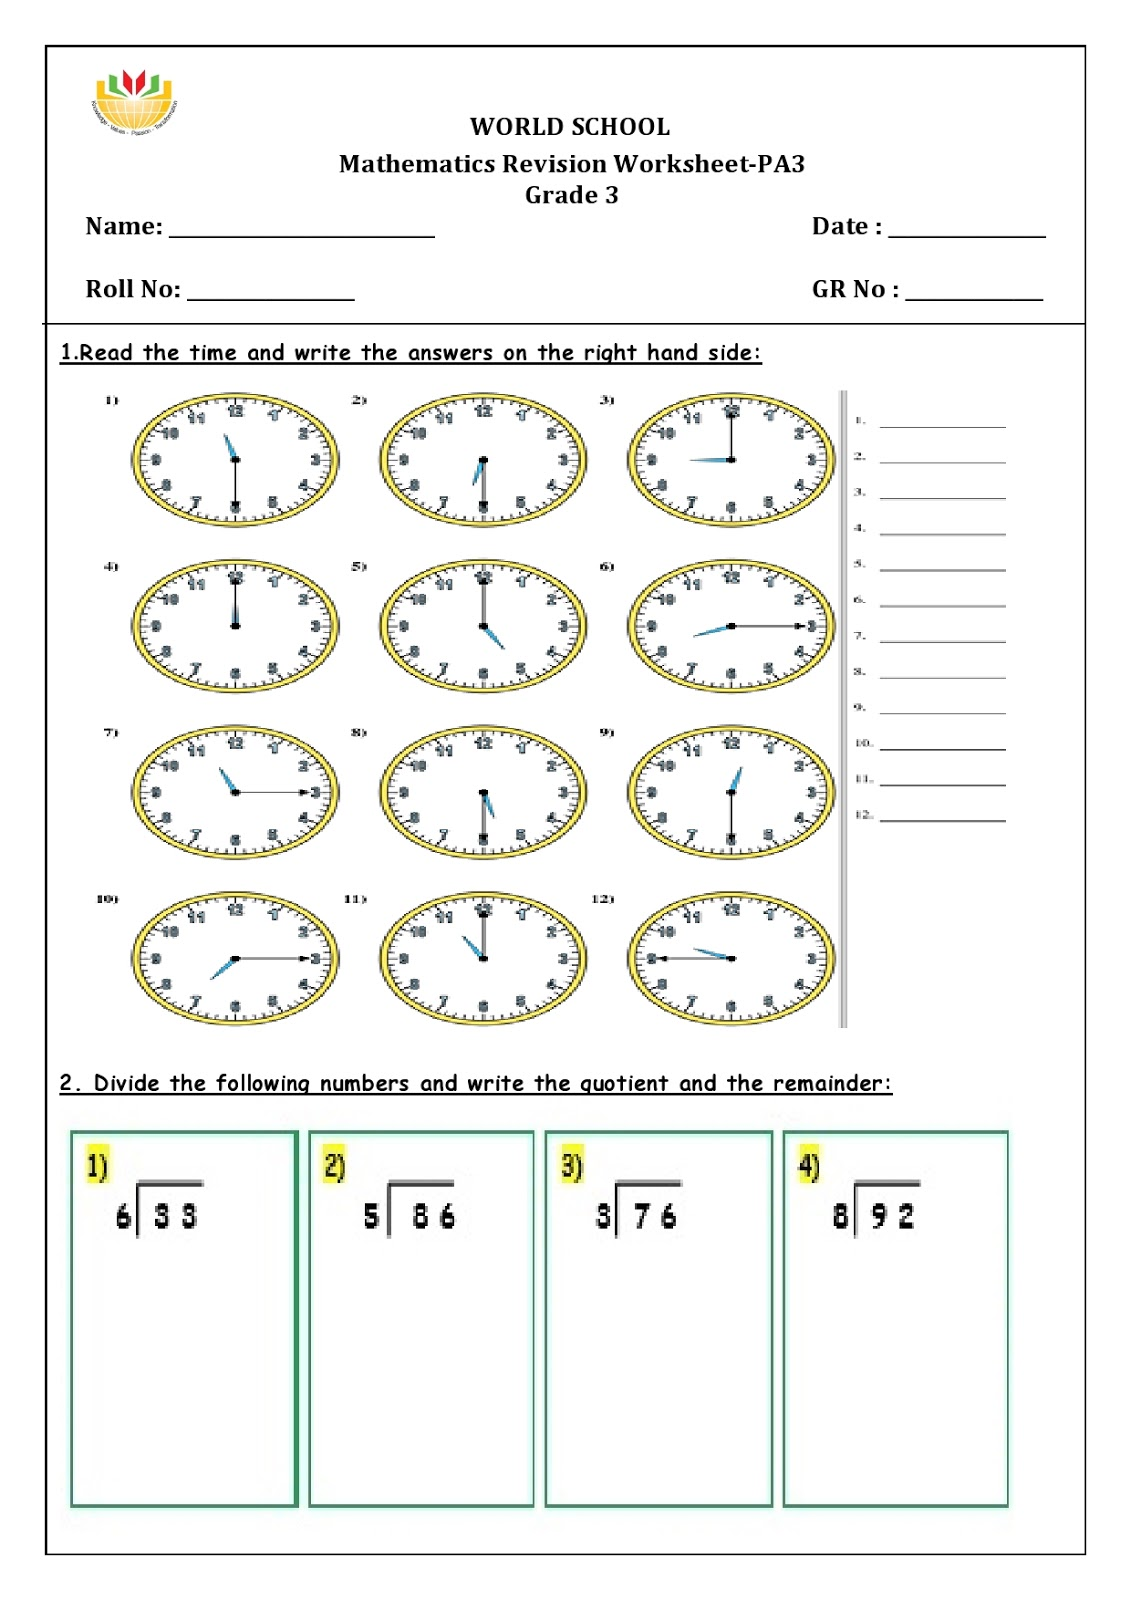 Birla World School Oman Homework For Grade 3 As On 28 01